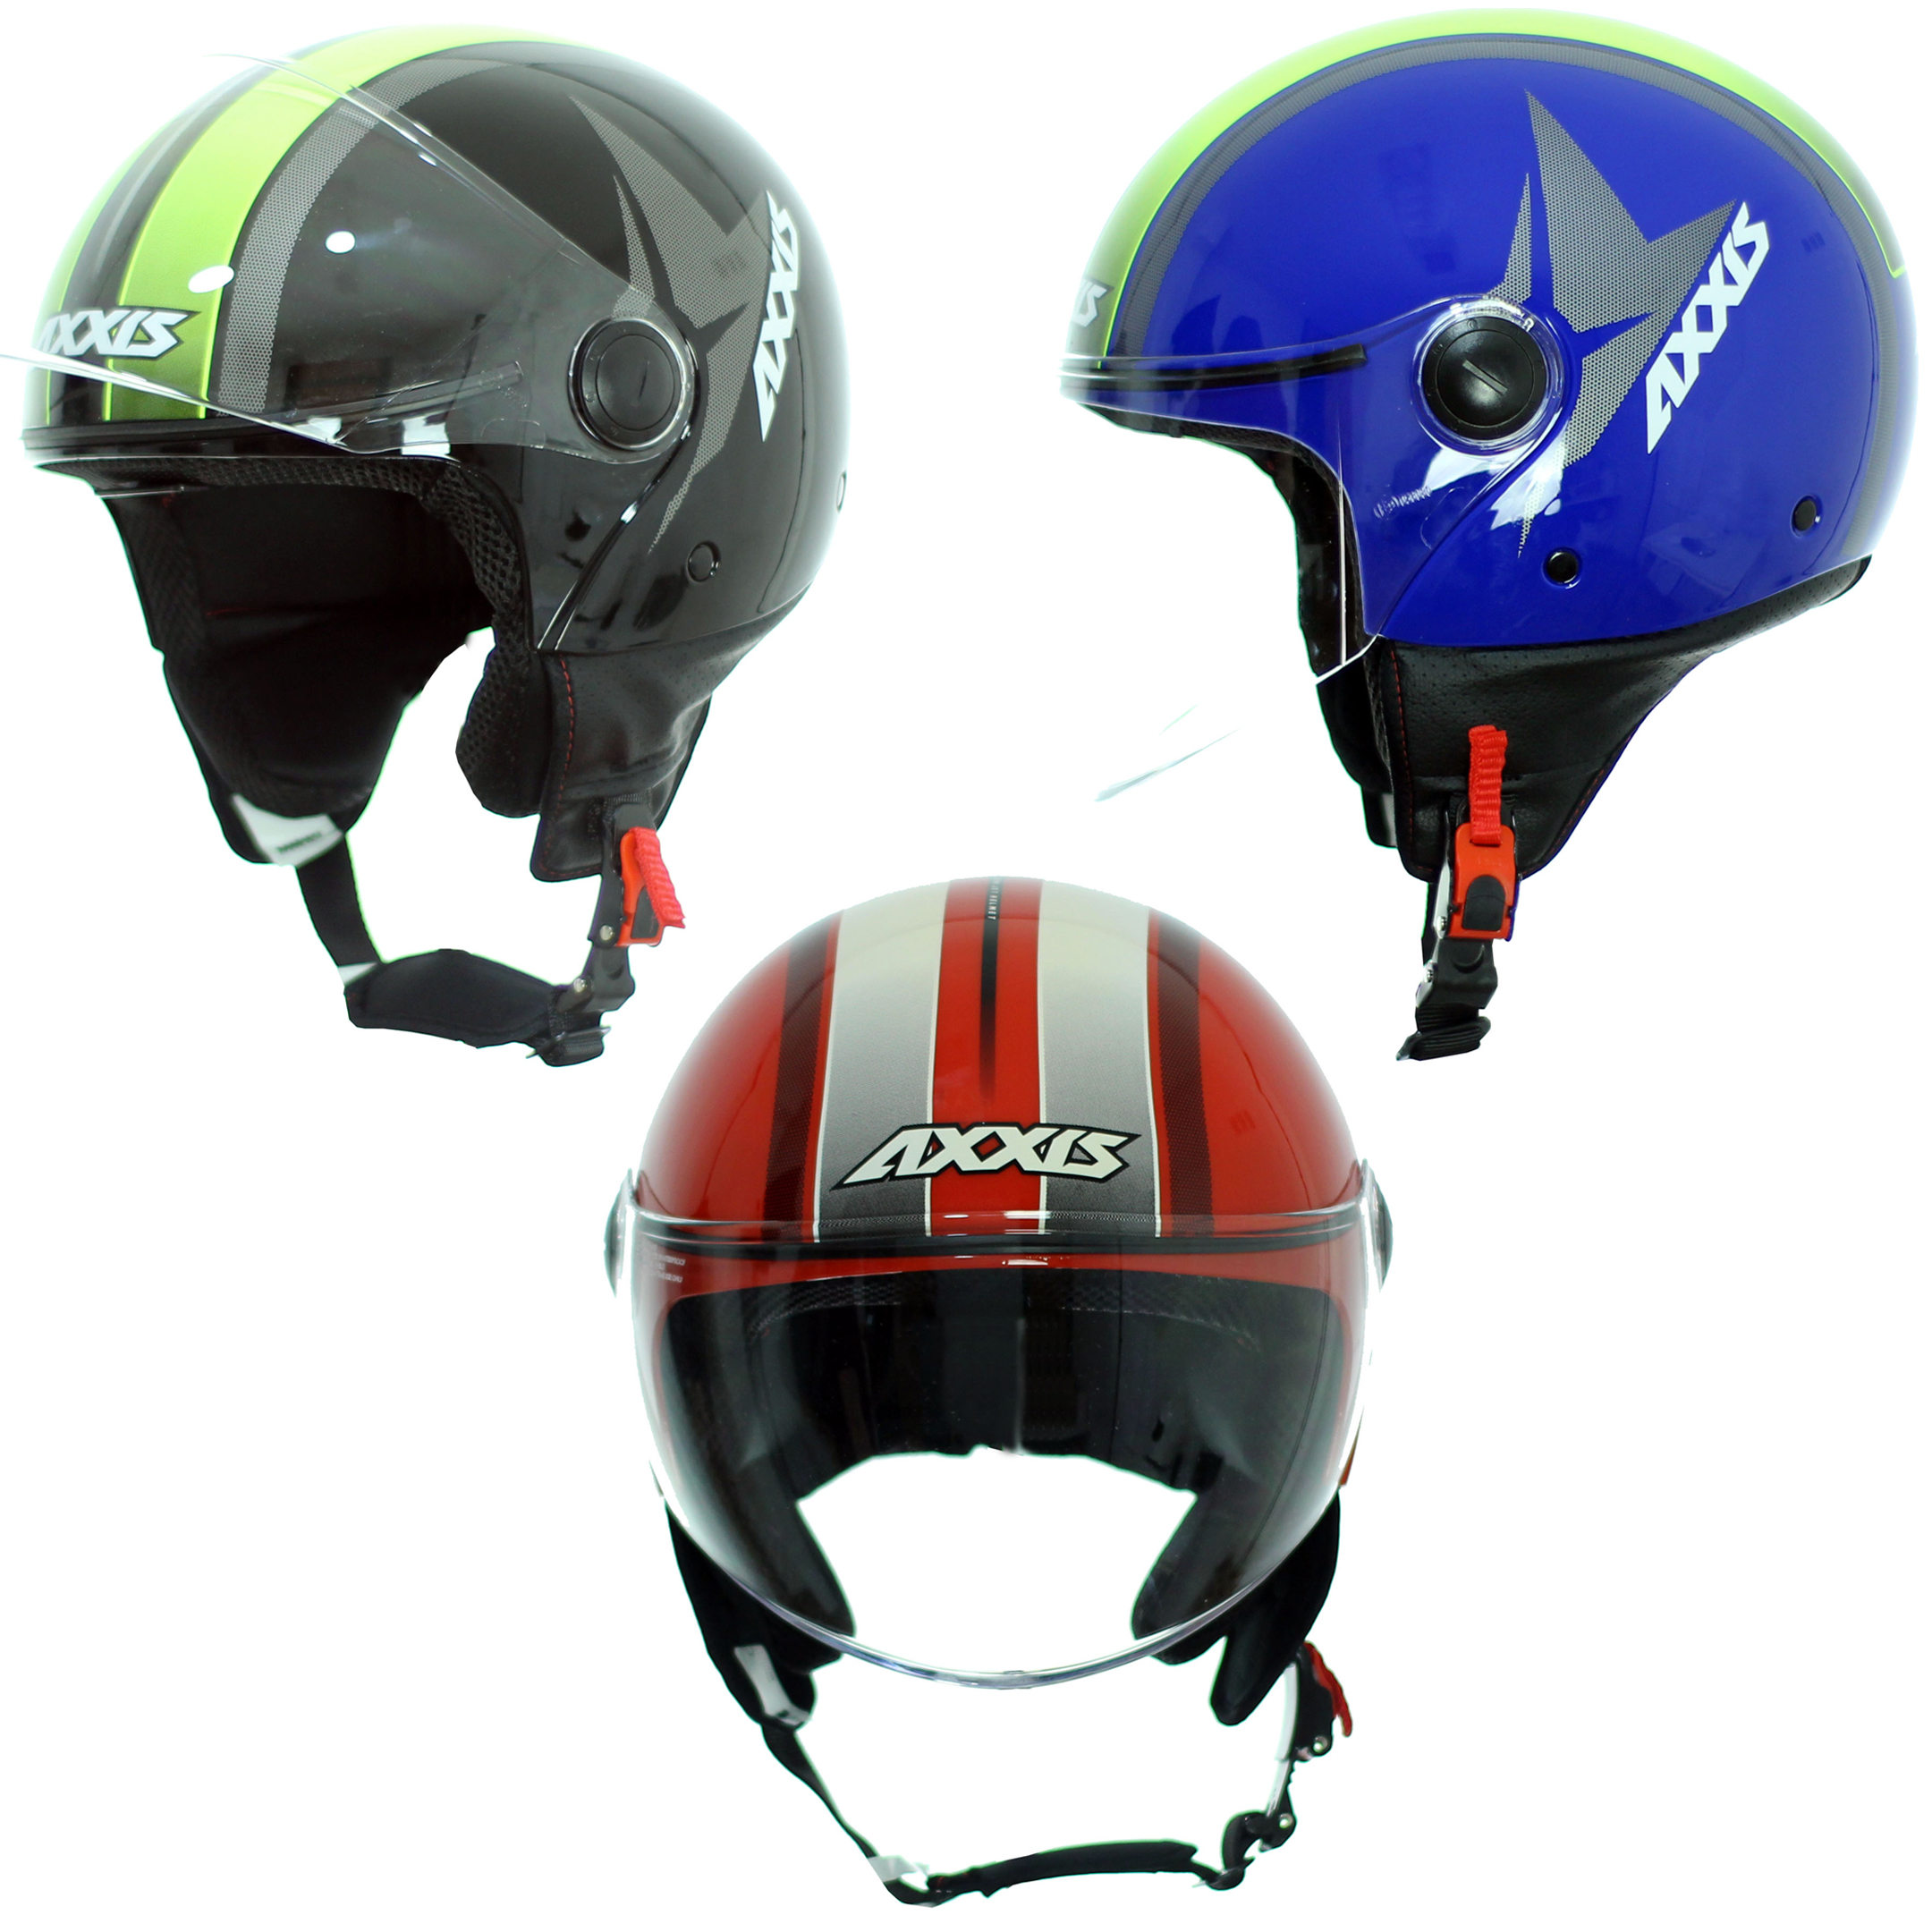 Axxis Square Flag-moto jet helmet with transparent visor, for road. Sizes XS-XL. Motorcycle, Unisex